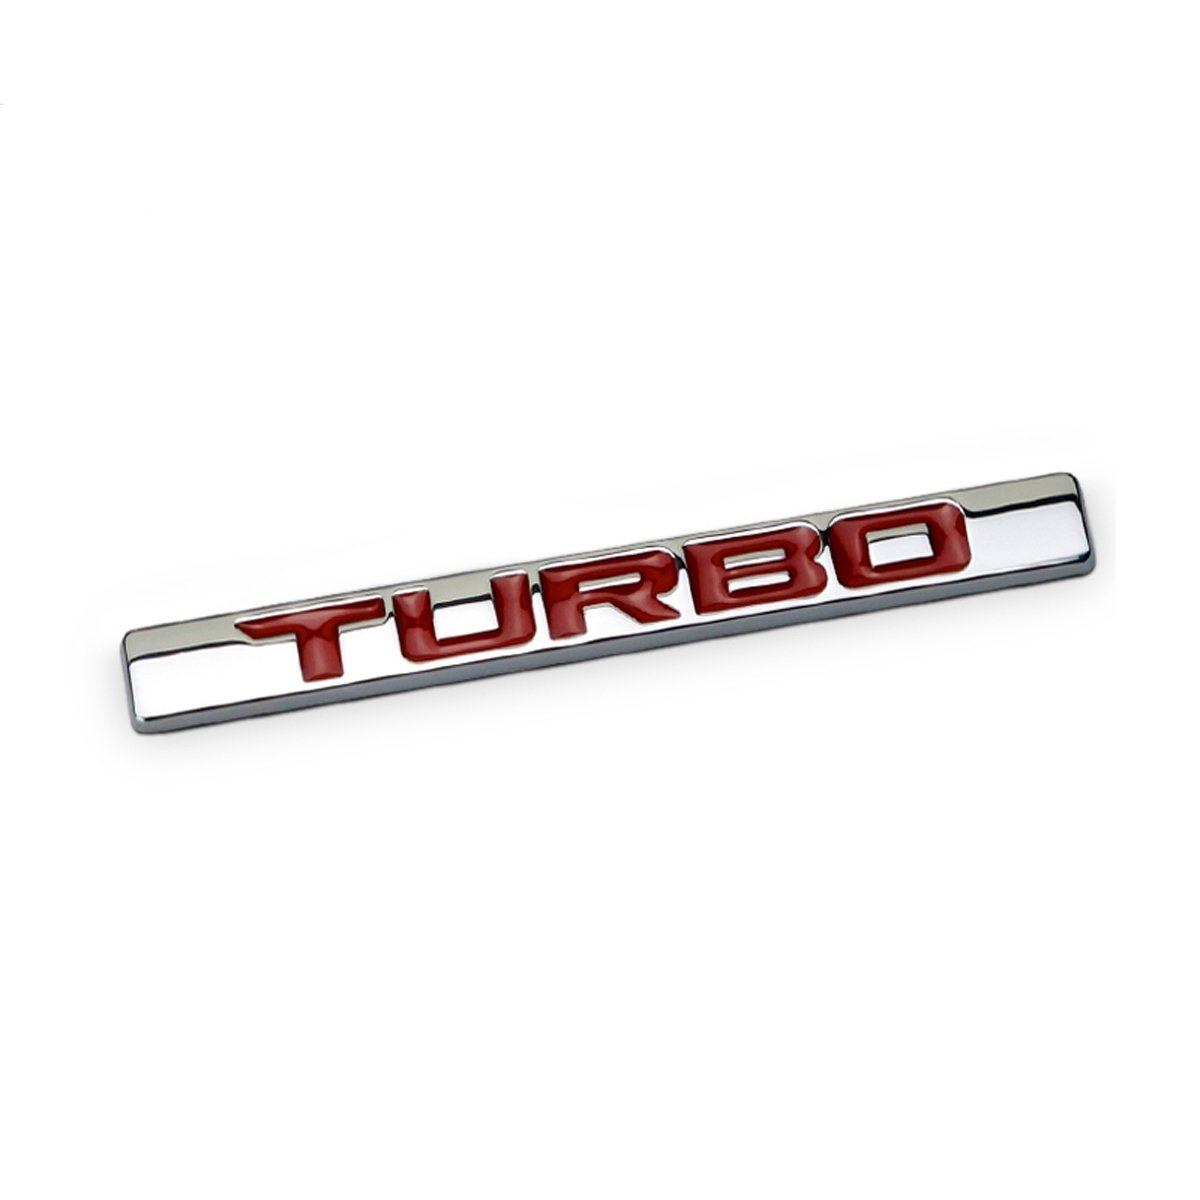 Dsycar 1Pcs 3D Metal 210 220 TURBO Car Side Fender Rear Trunk Emblem Badge Sticker Decals for Universal Cars Motorcycle Car Styling Decorative Accessories (7)